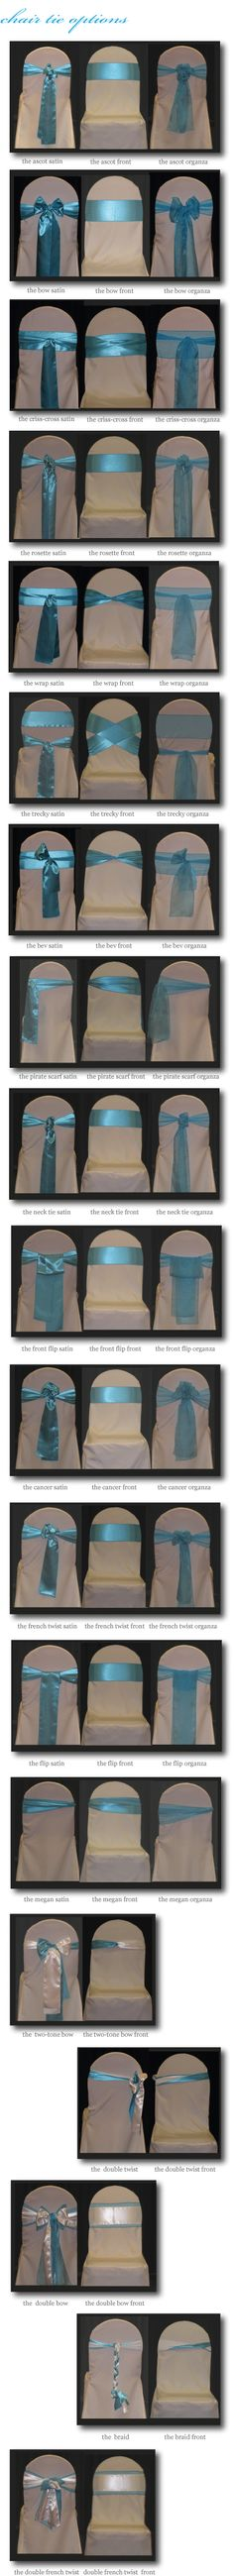 (too many) chair tie options Wedding Chairs, Wedding Reception Decorations, Wedding Table, Diy Wedding, Wedding Venues, Wedding Ideas, Chair Bows, Chair Sashes, Diy Chair